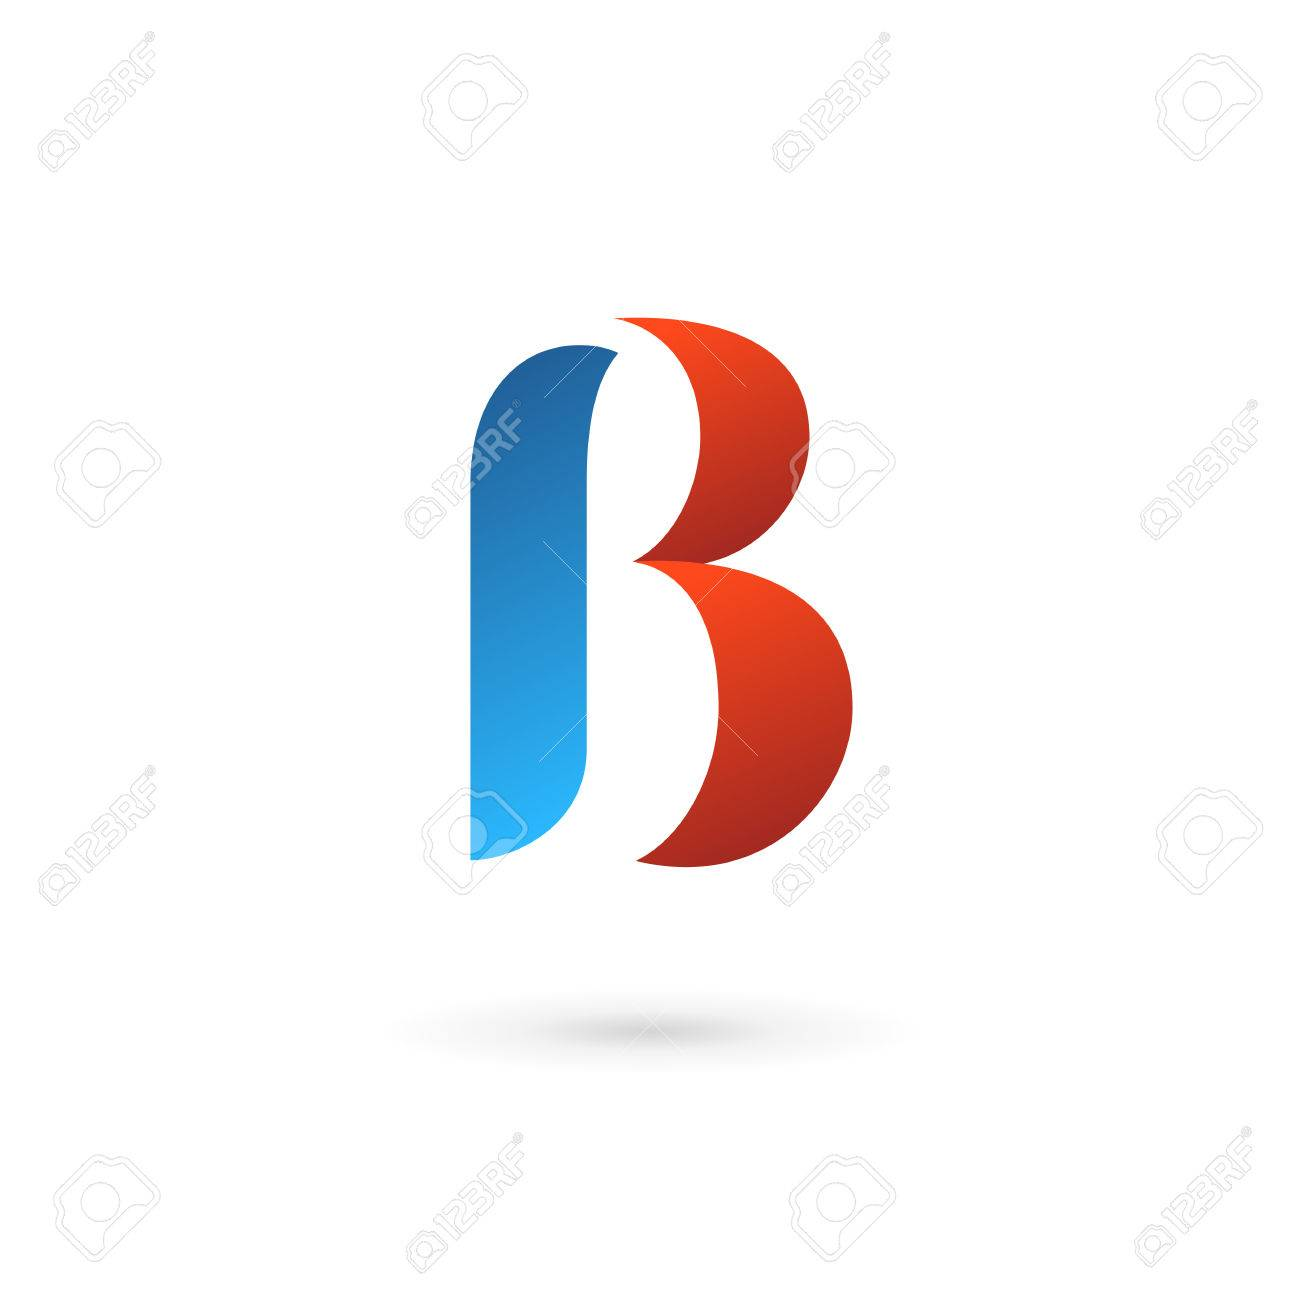 letter b icon design template elements stock vector 35516625